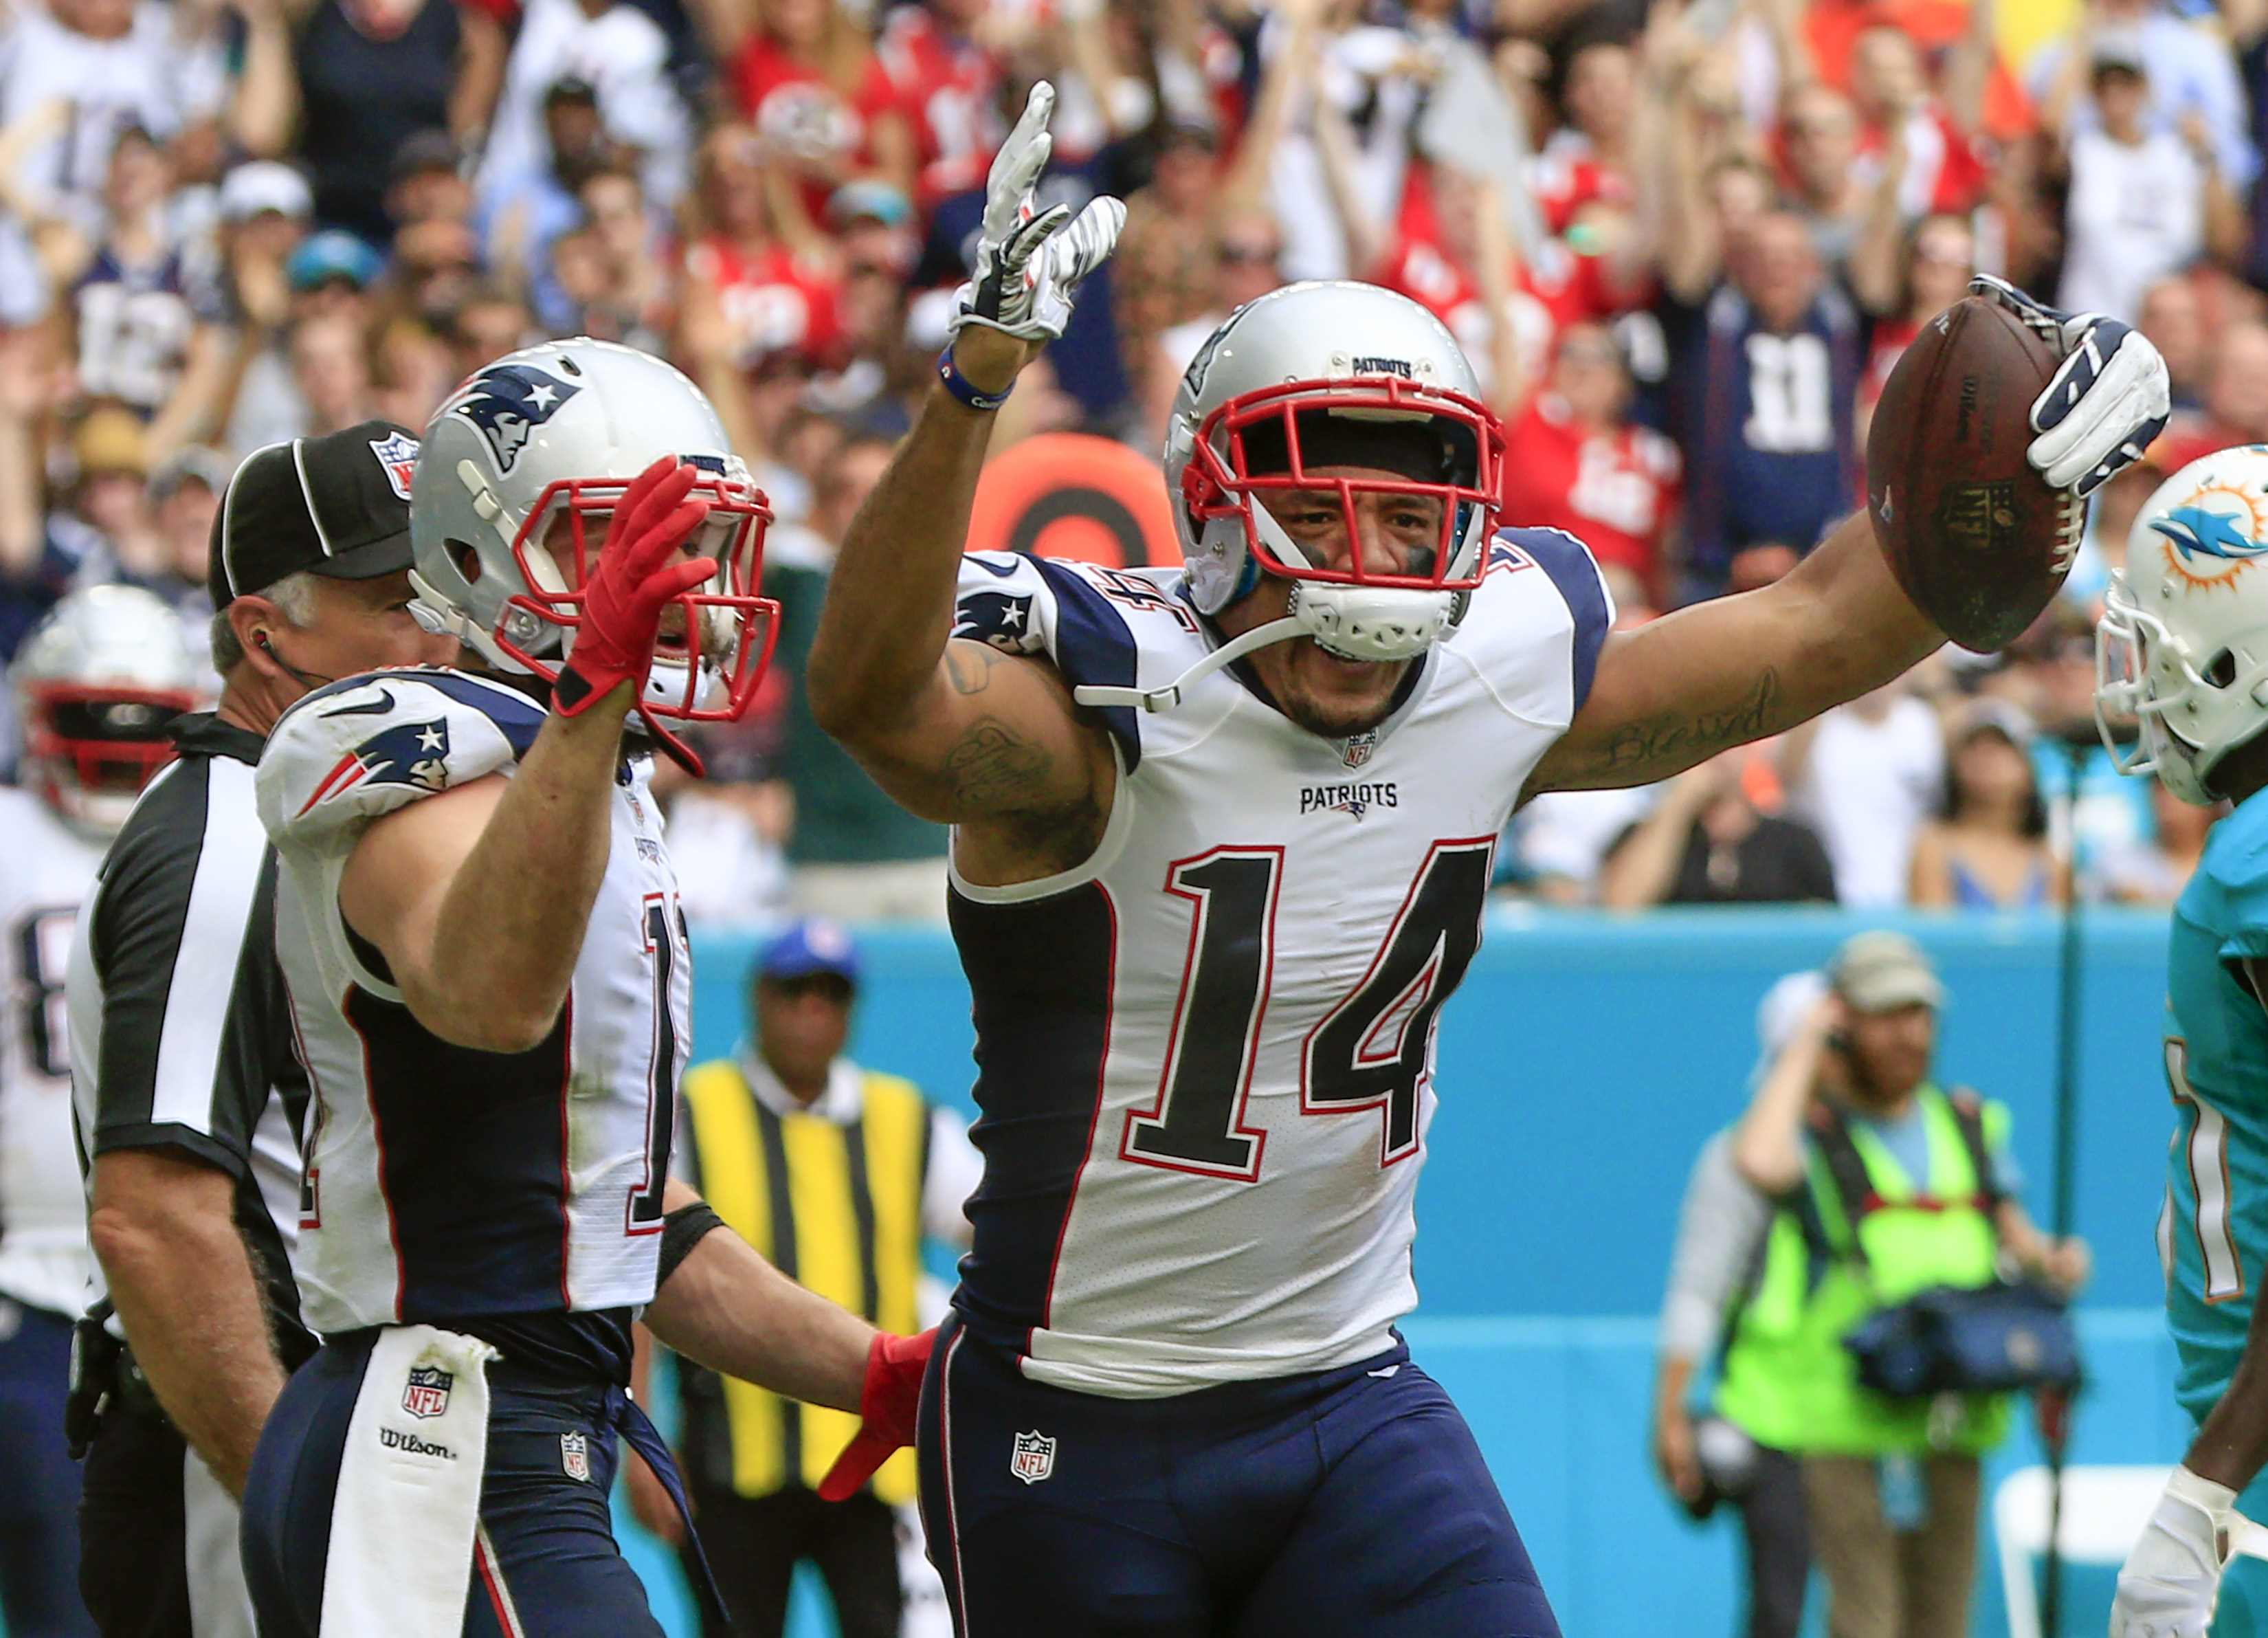 Nf Nfl Free Agents 2016 Rankings - Jan 1 2017 miami gardens fl usa new england patriots wide receiver michael floyd 14 celebrates a touchdown during the second quarter of an nfl